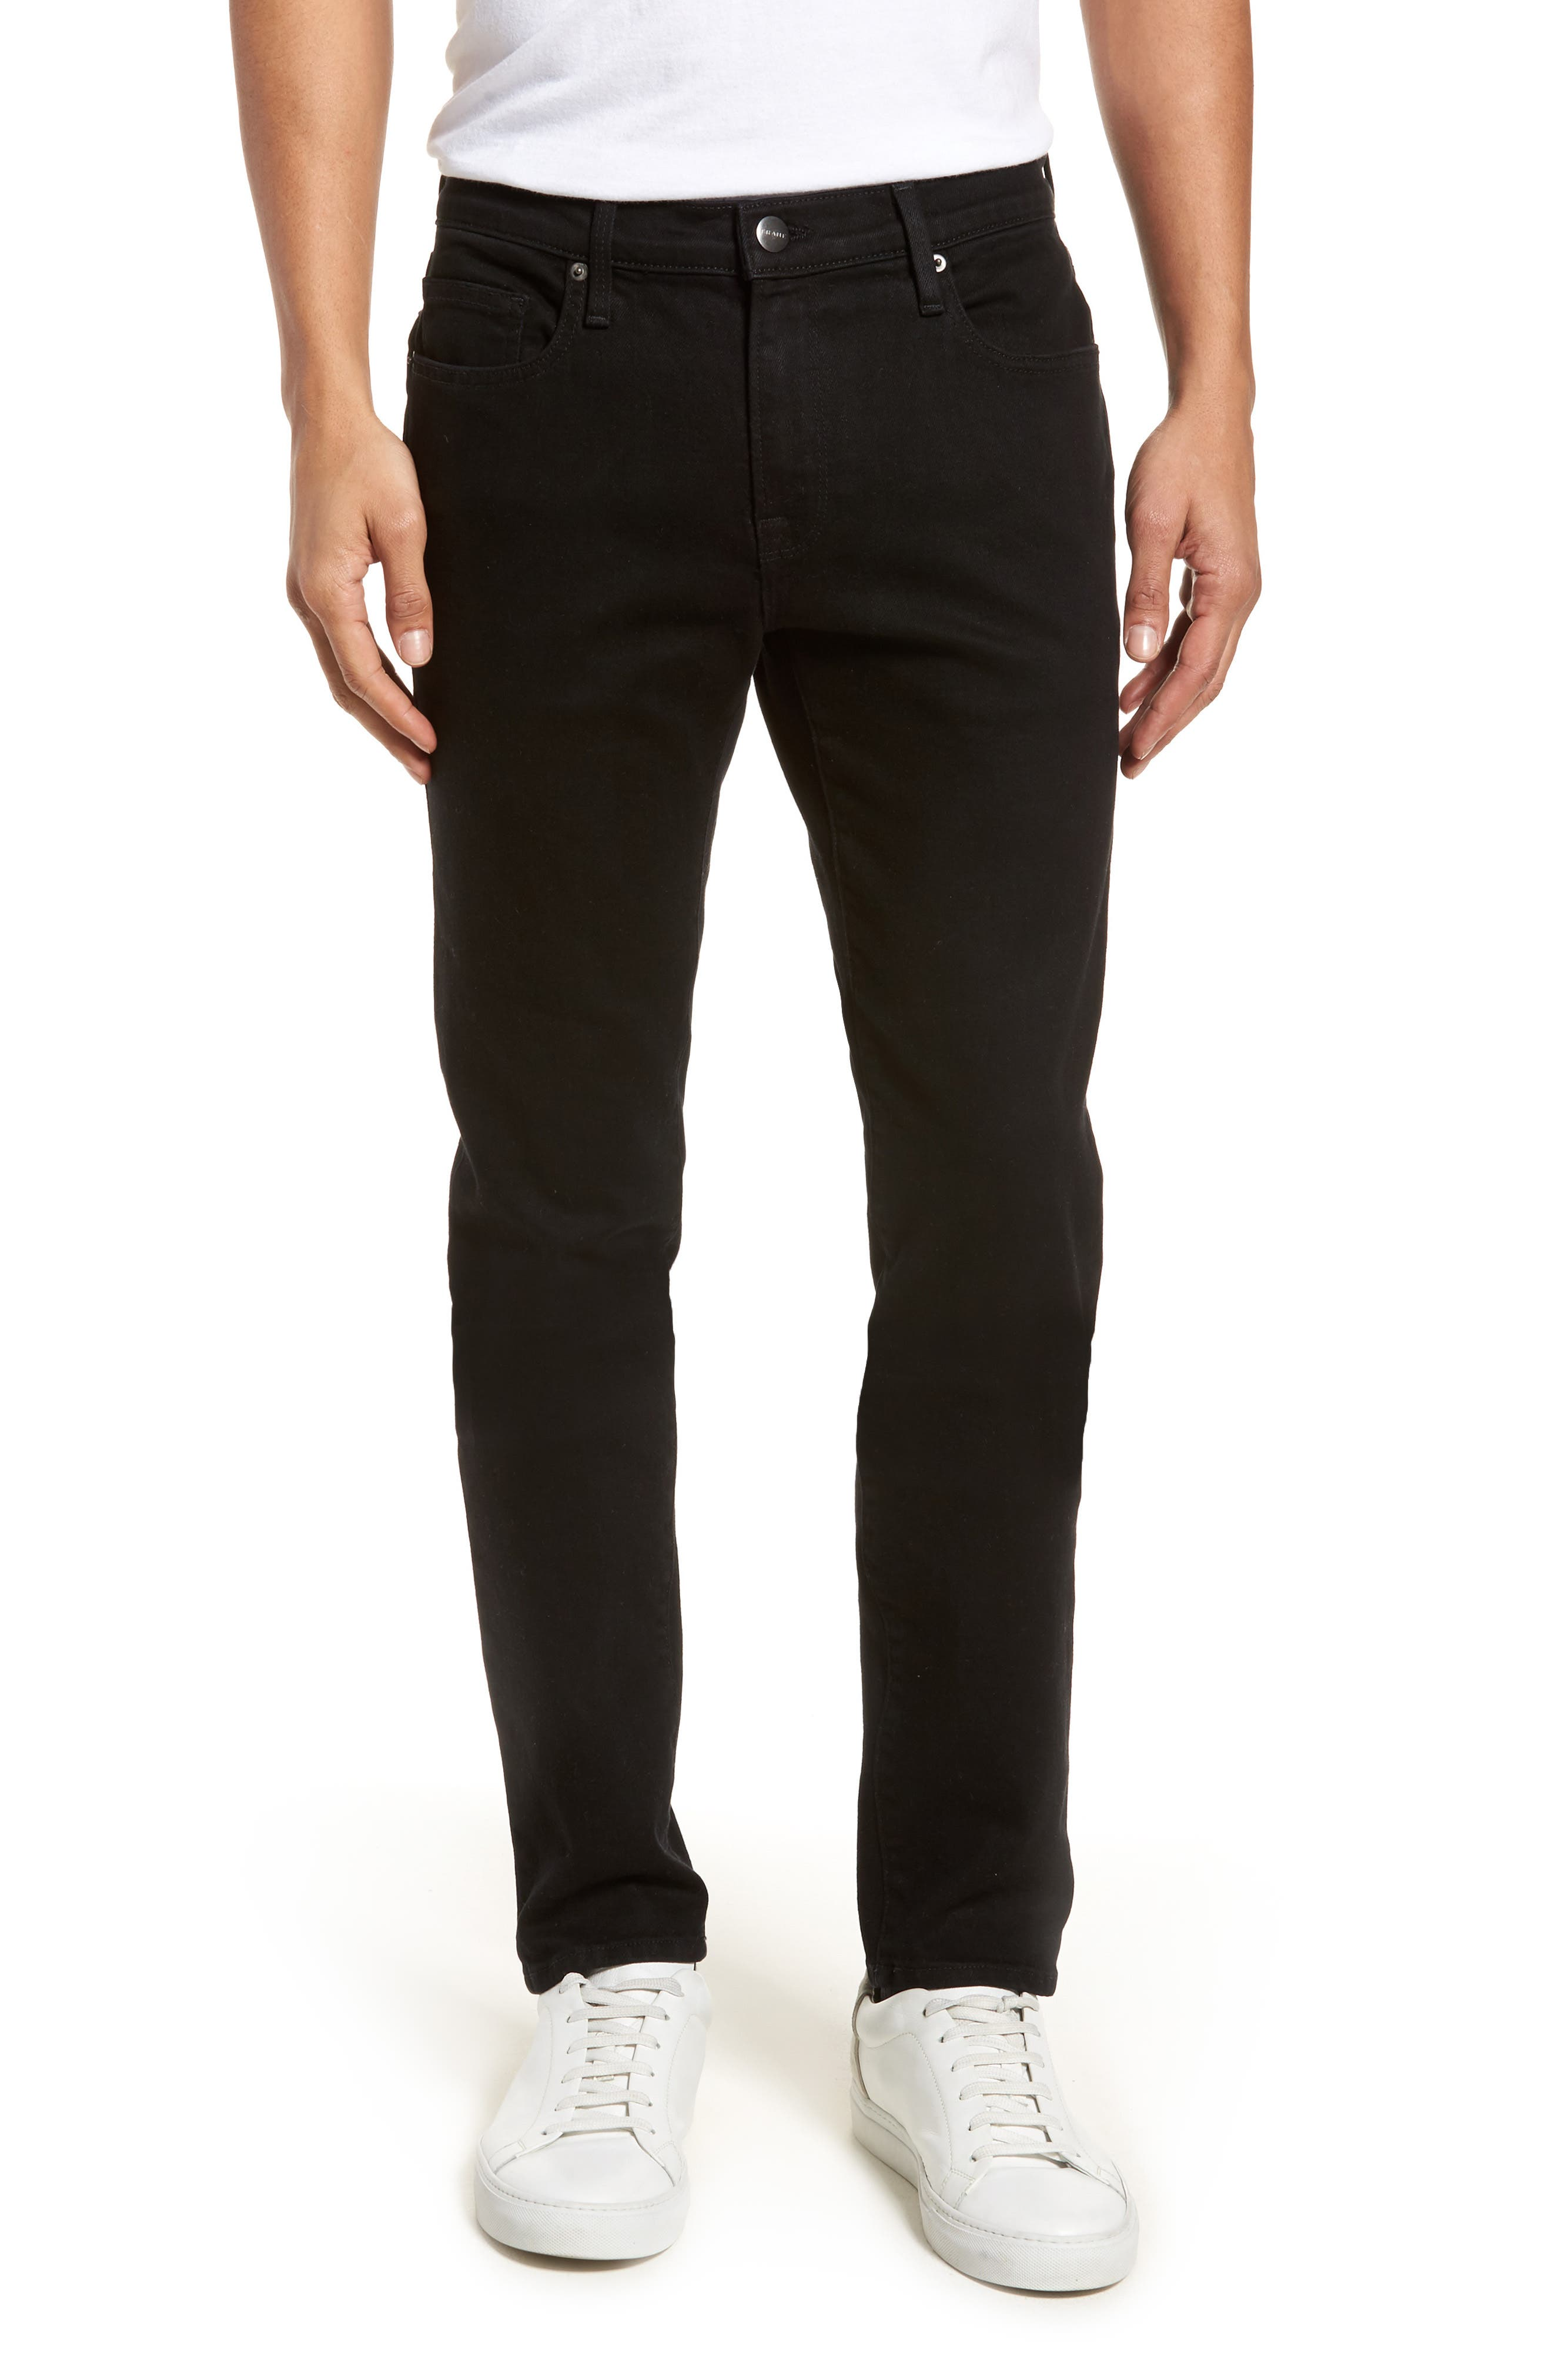 L'Homme Skinny Fit Jeans,                             Main thumbnail 1, color,                             NOIR